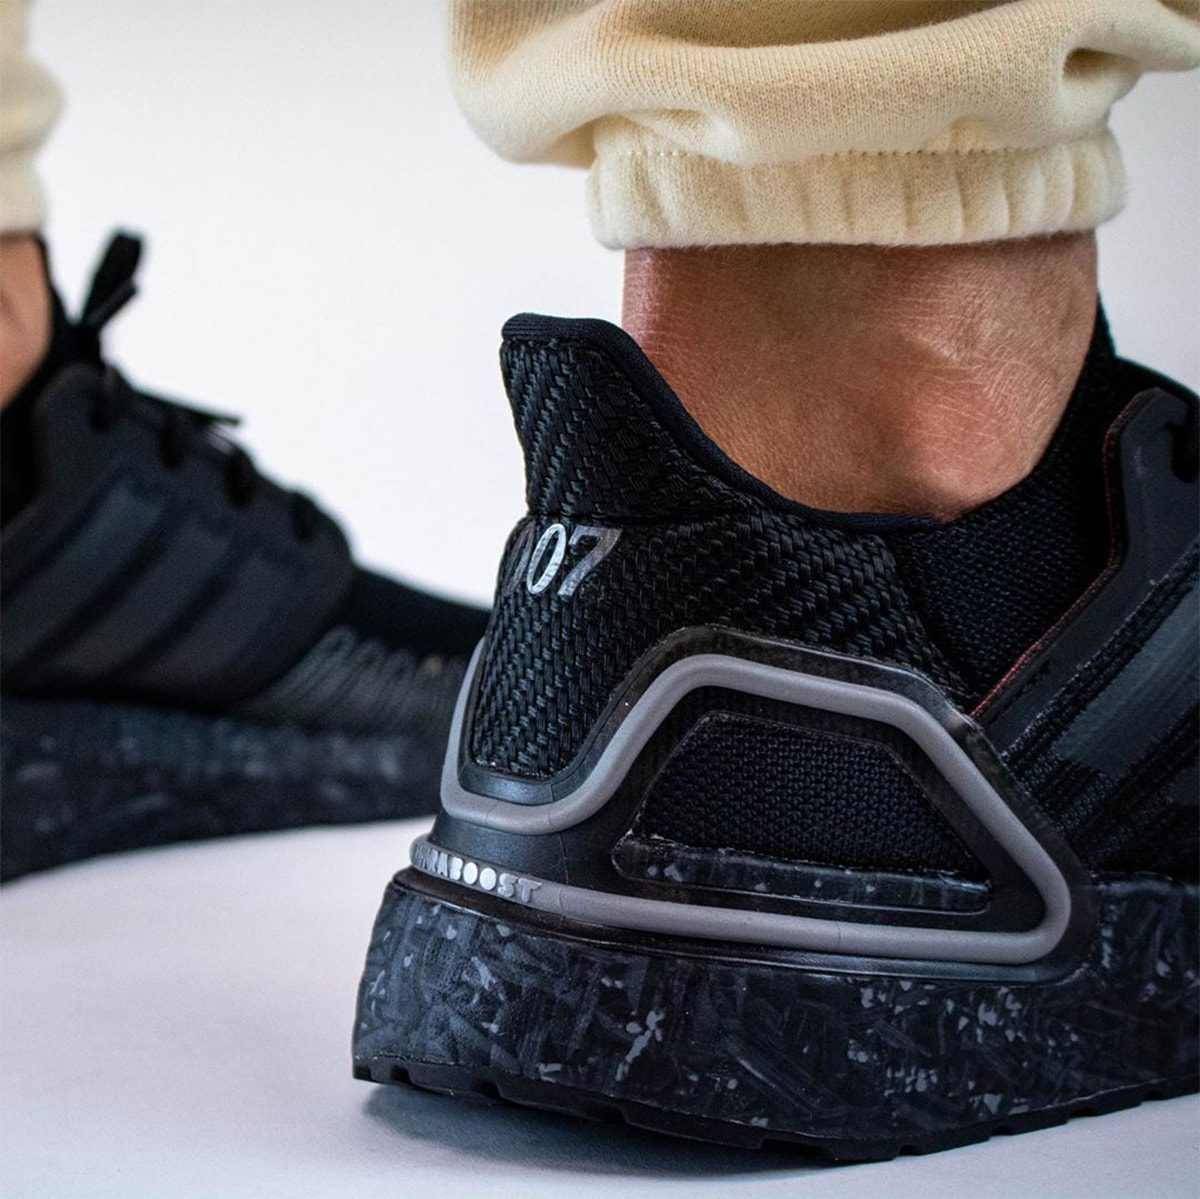 James Bond x adidas Collection Coming in 2020